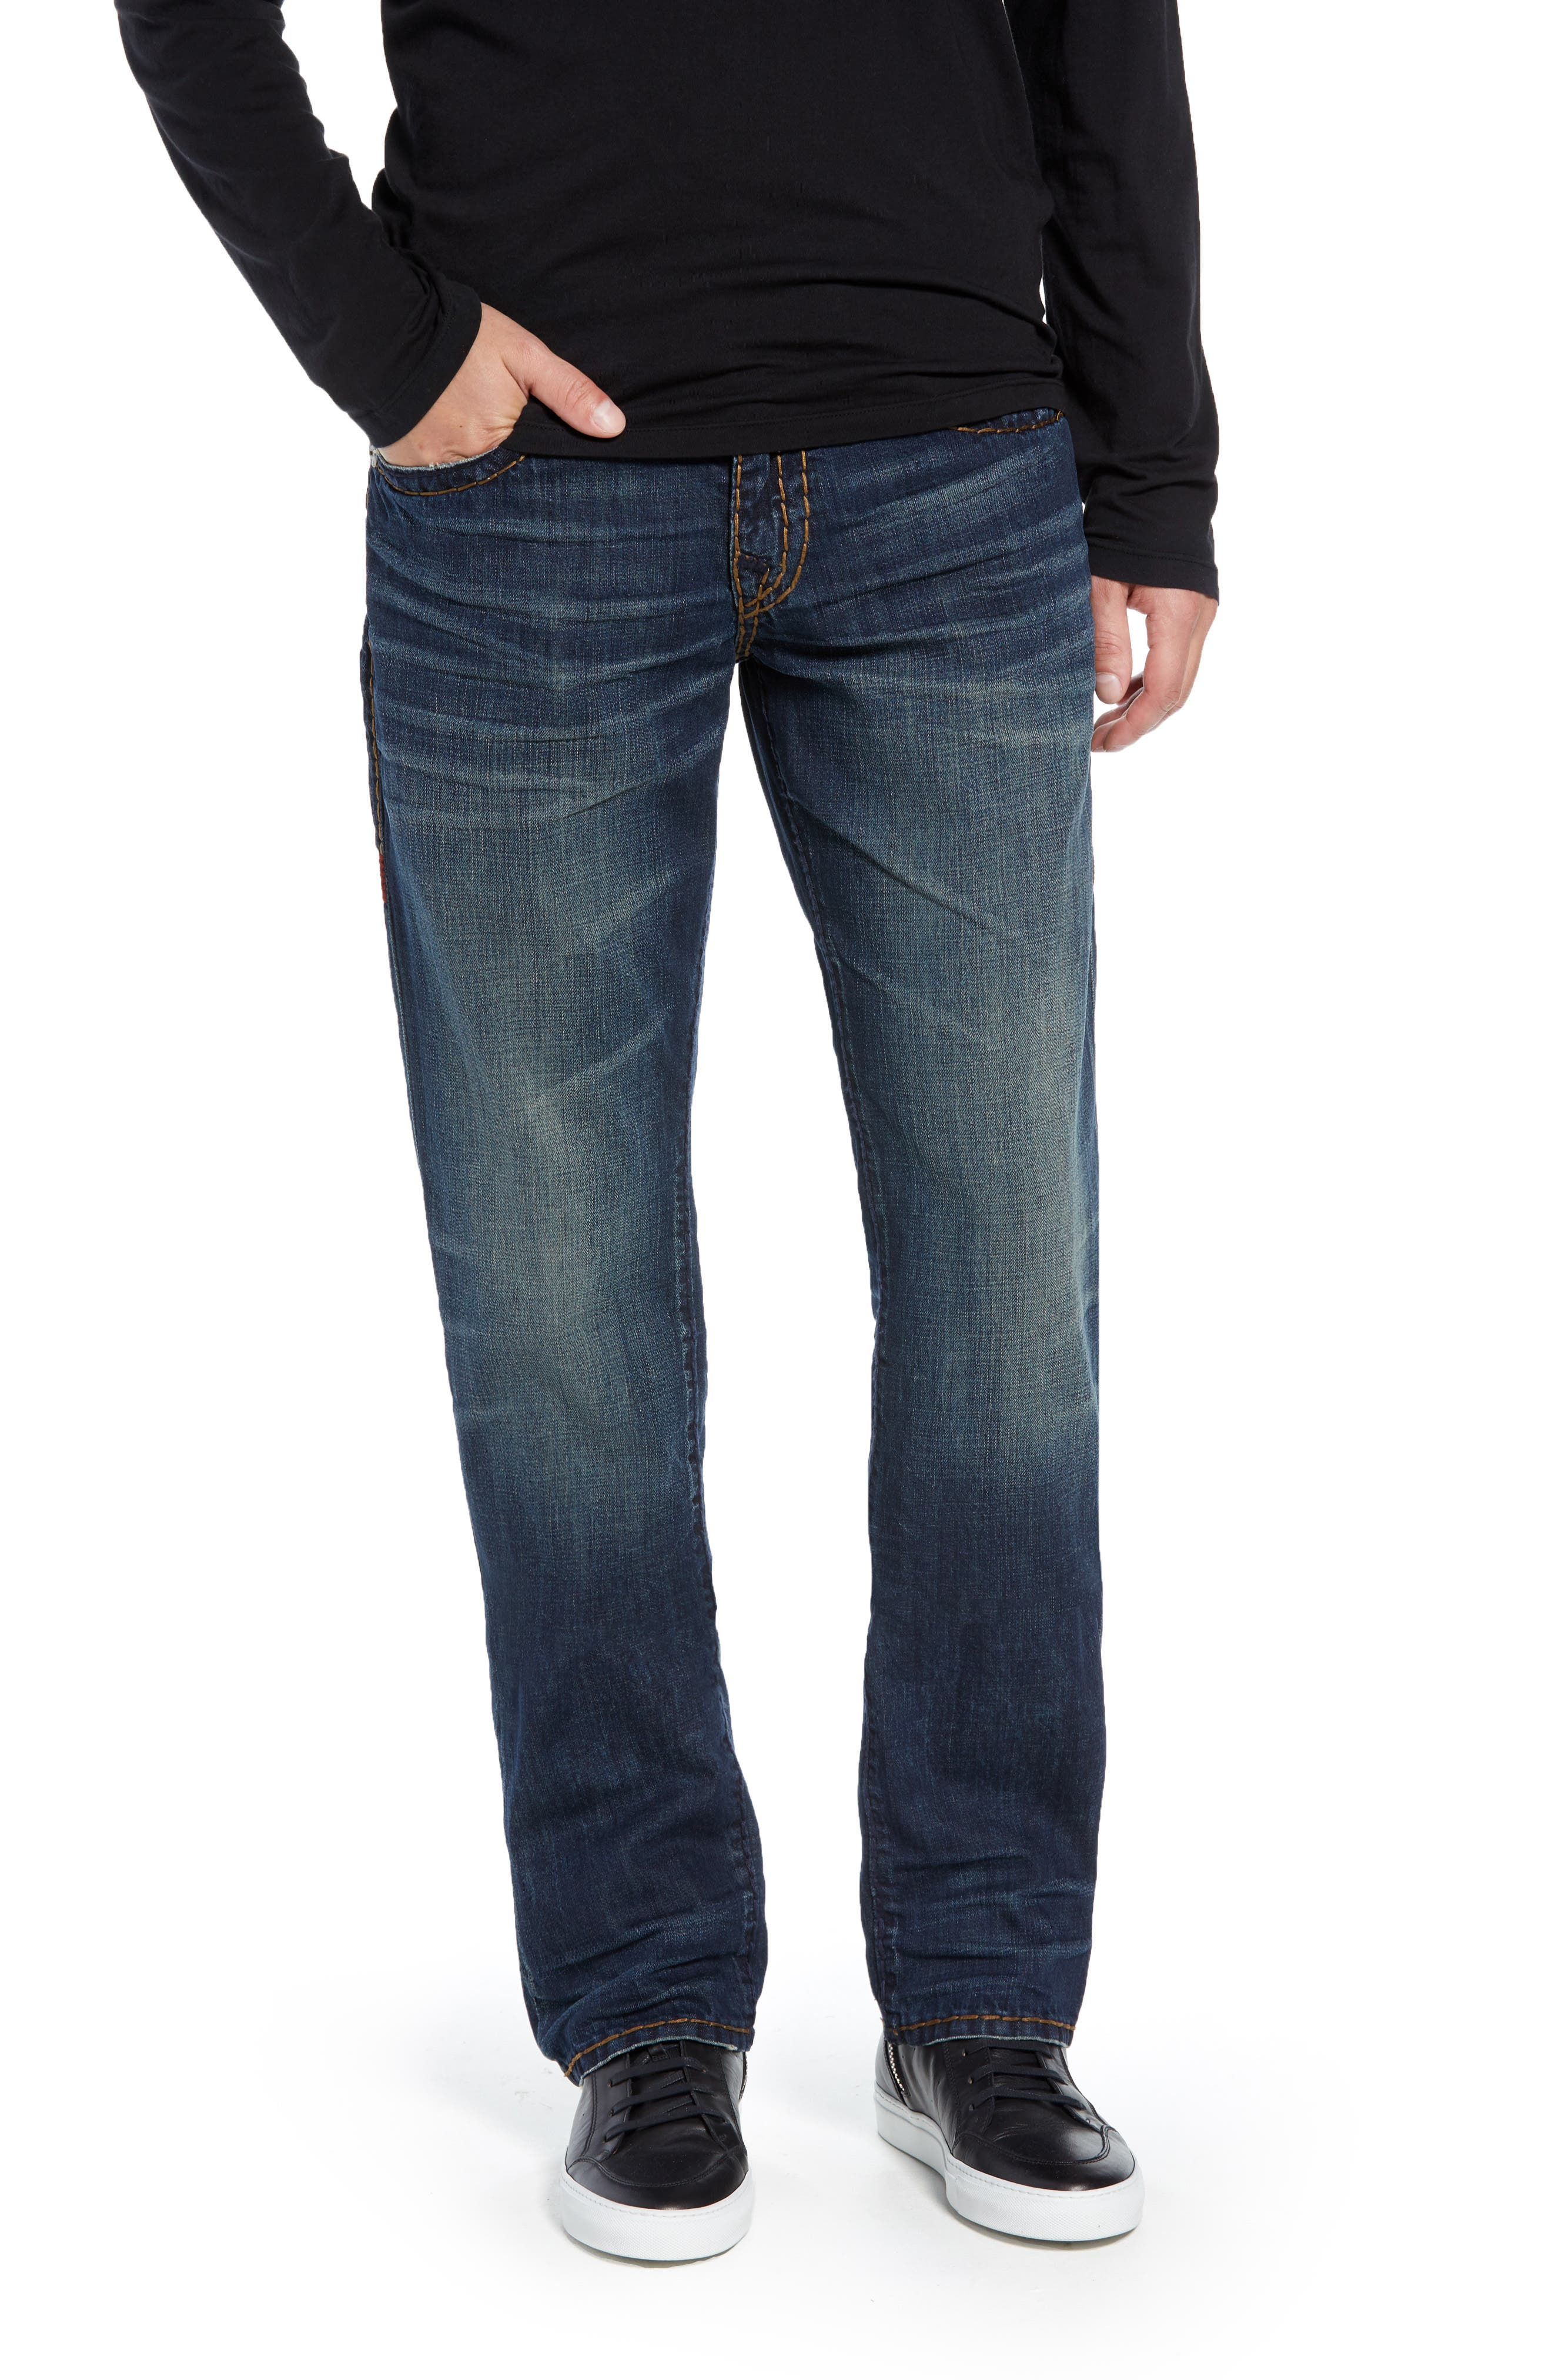 Ricky Skinny Fit Jeans,                         Main,                         color, DARK MONORAIL